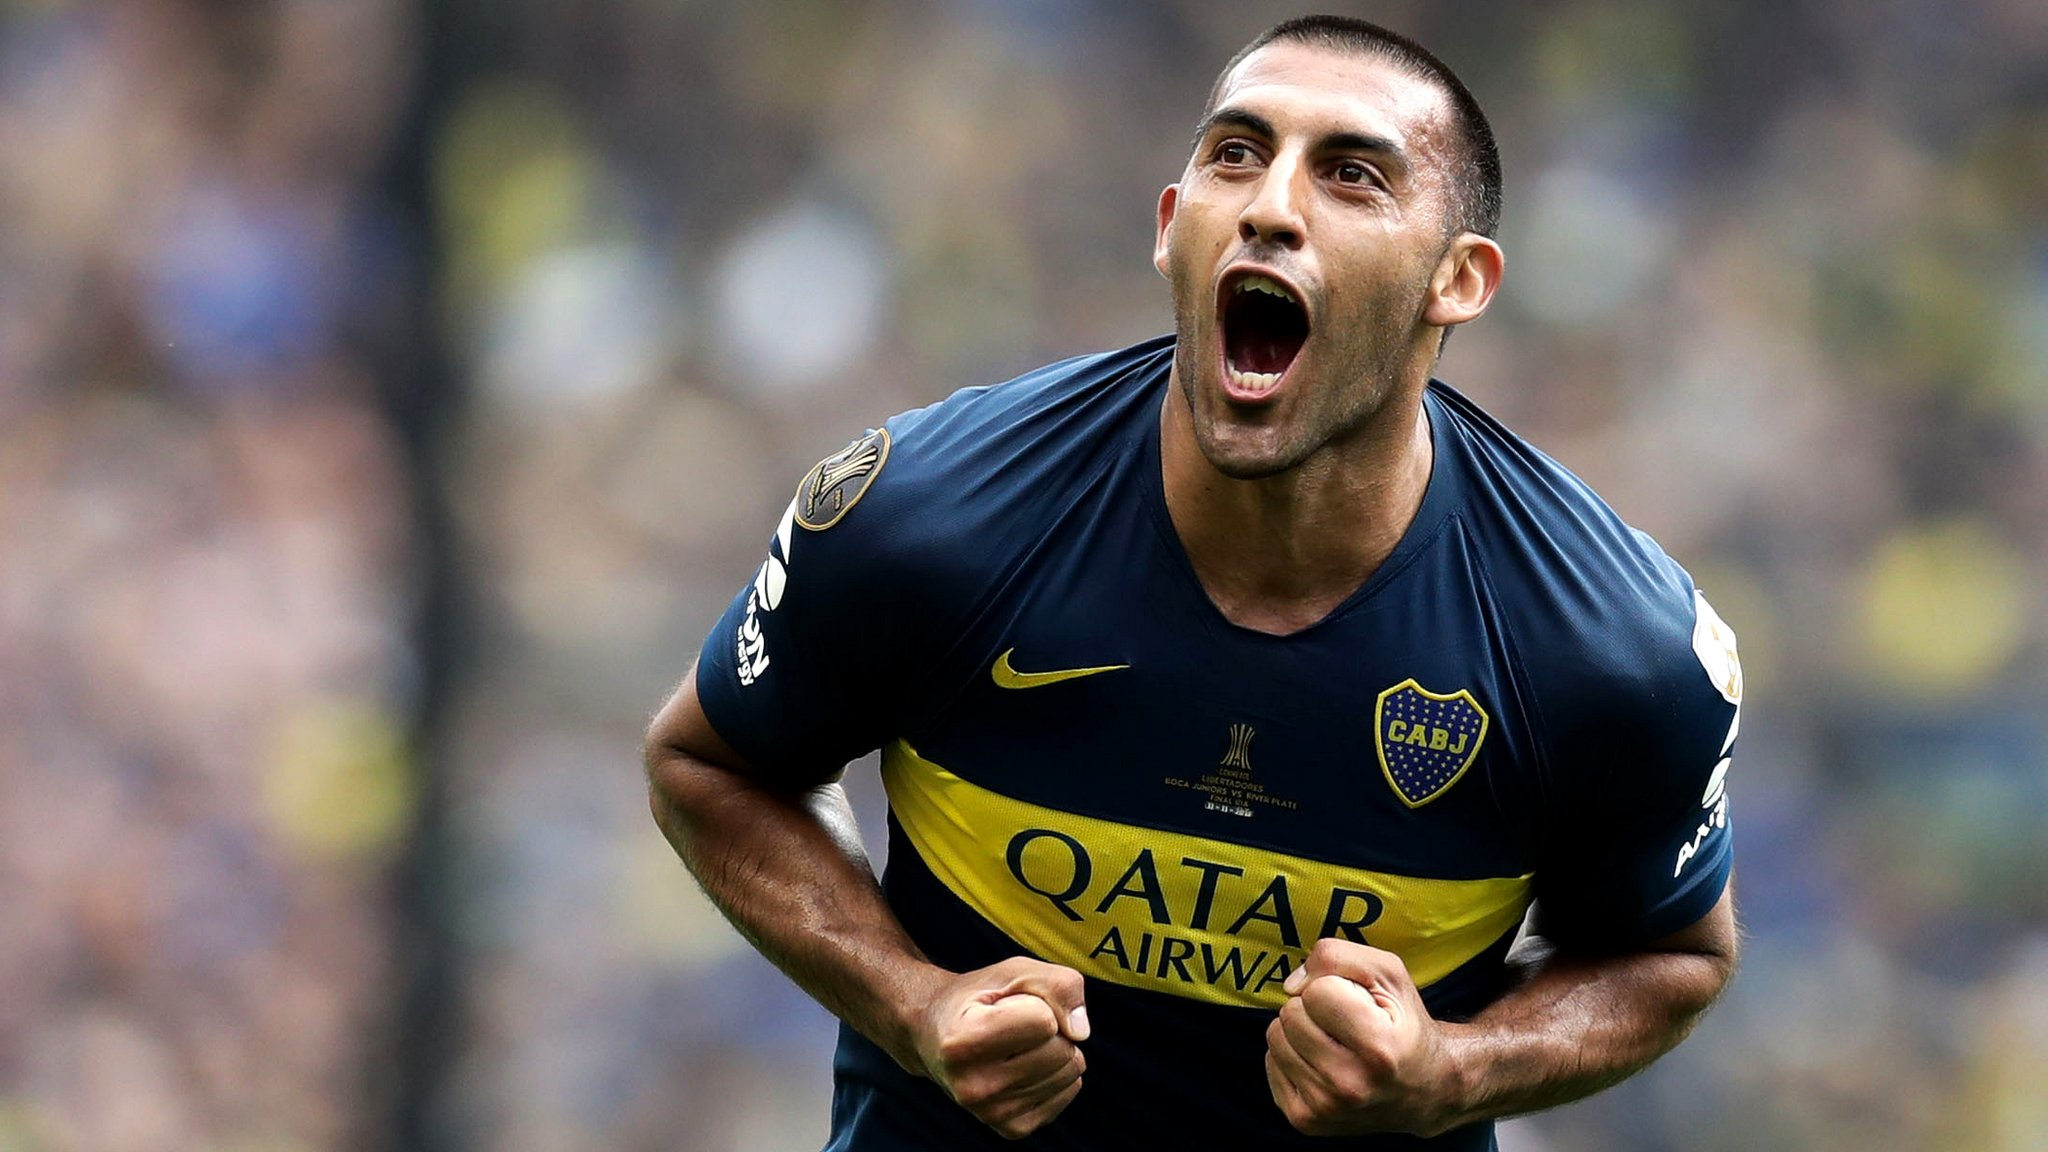 Copa Libertadores final: River Plate draw at Boca Juniors in thrilling first leg